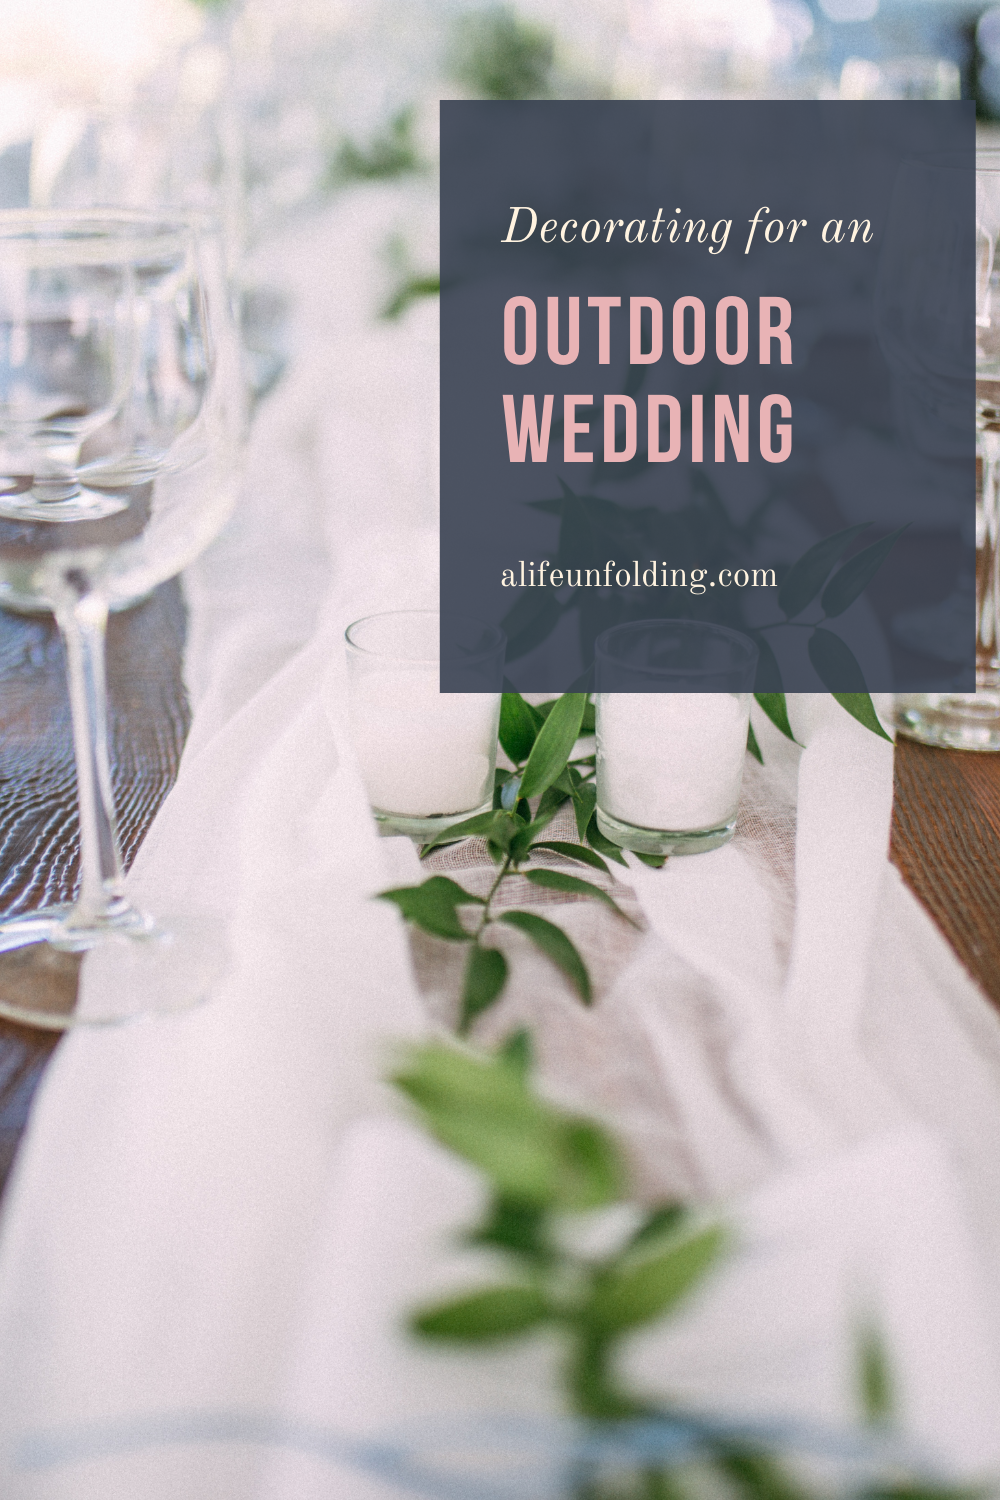 Decorating for your outdoor wedding